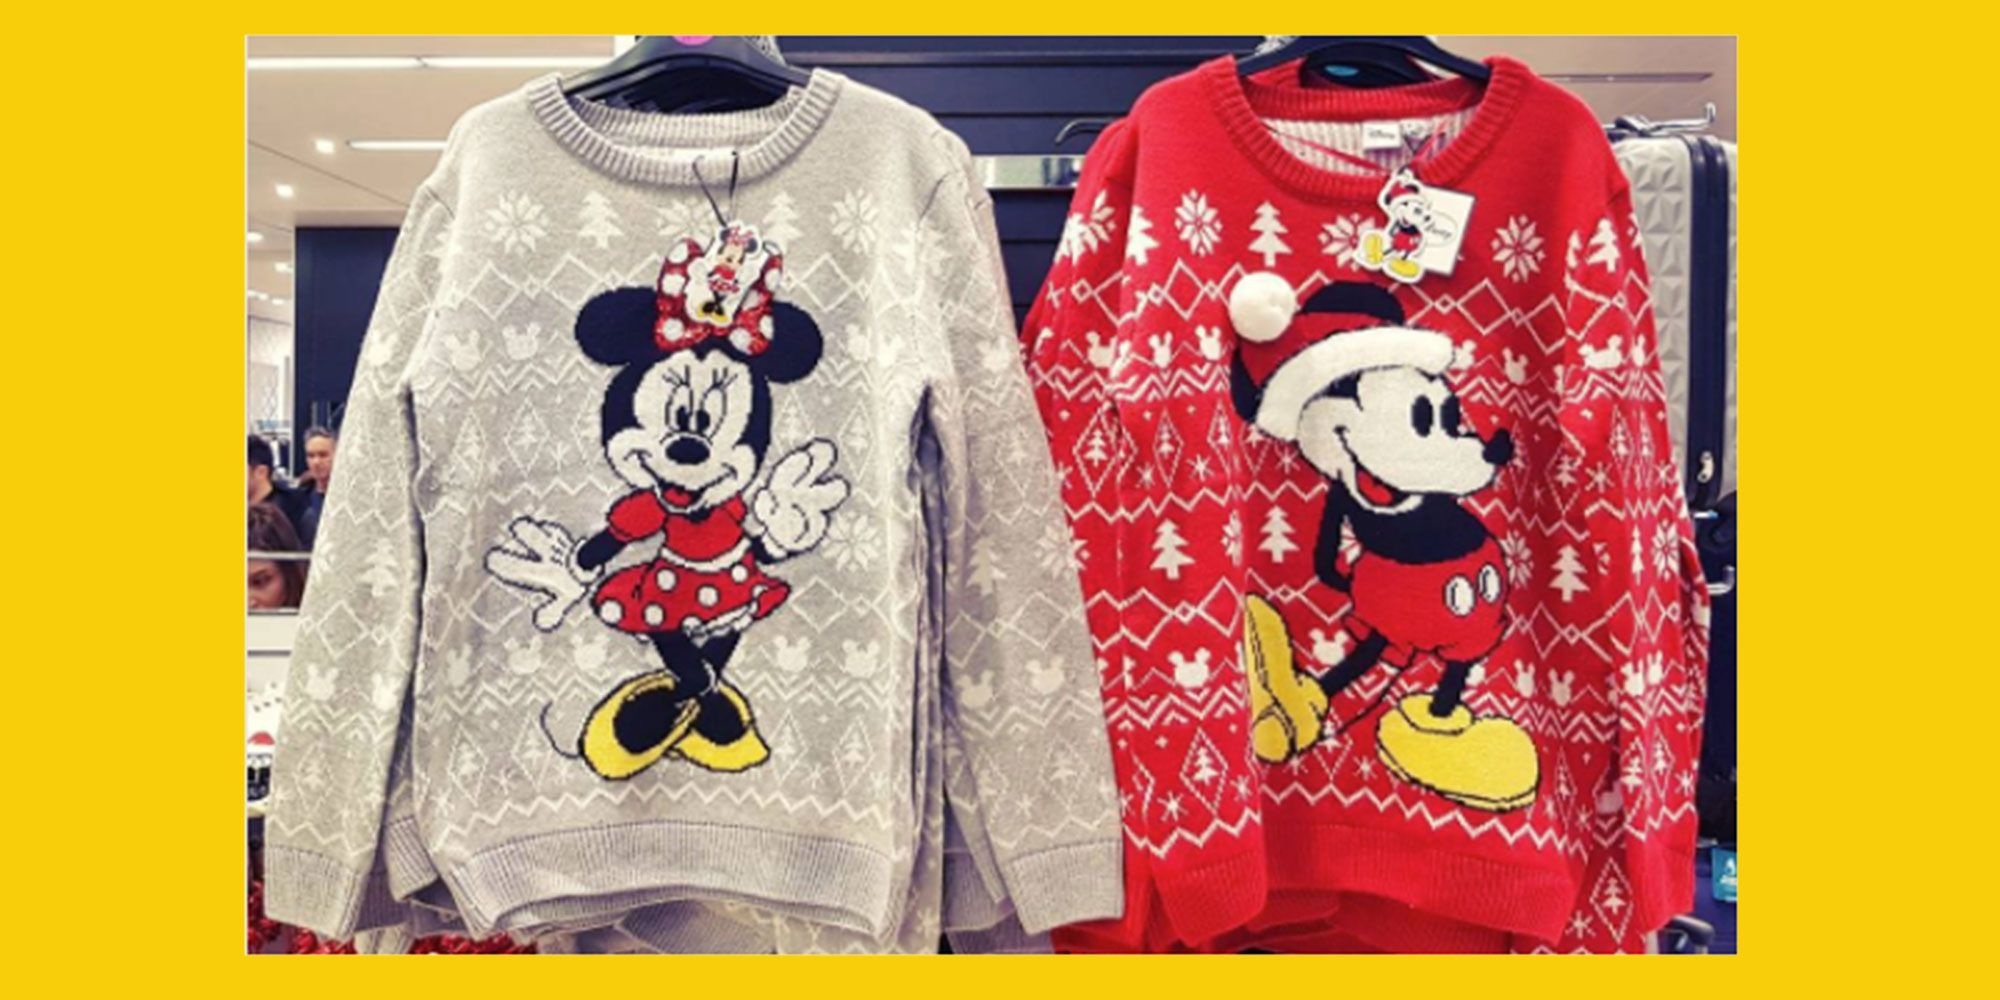 Disney Christmas Shirt Designs.Primark Is Selling A Range Of Disney Christmas Jumpers And